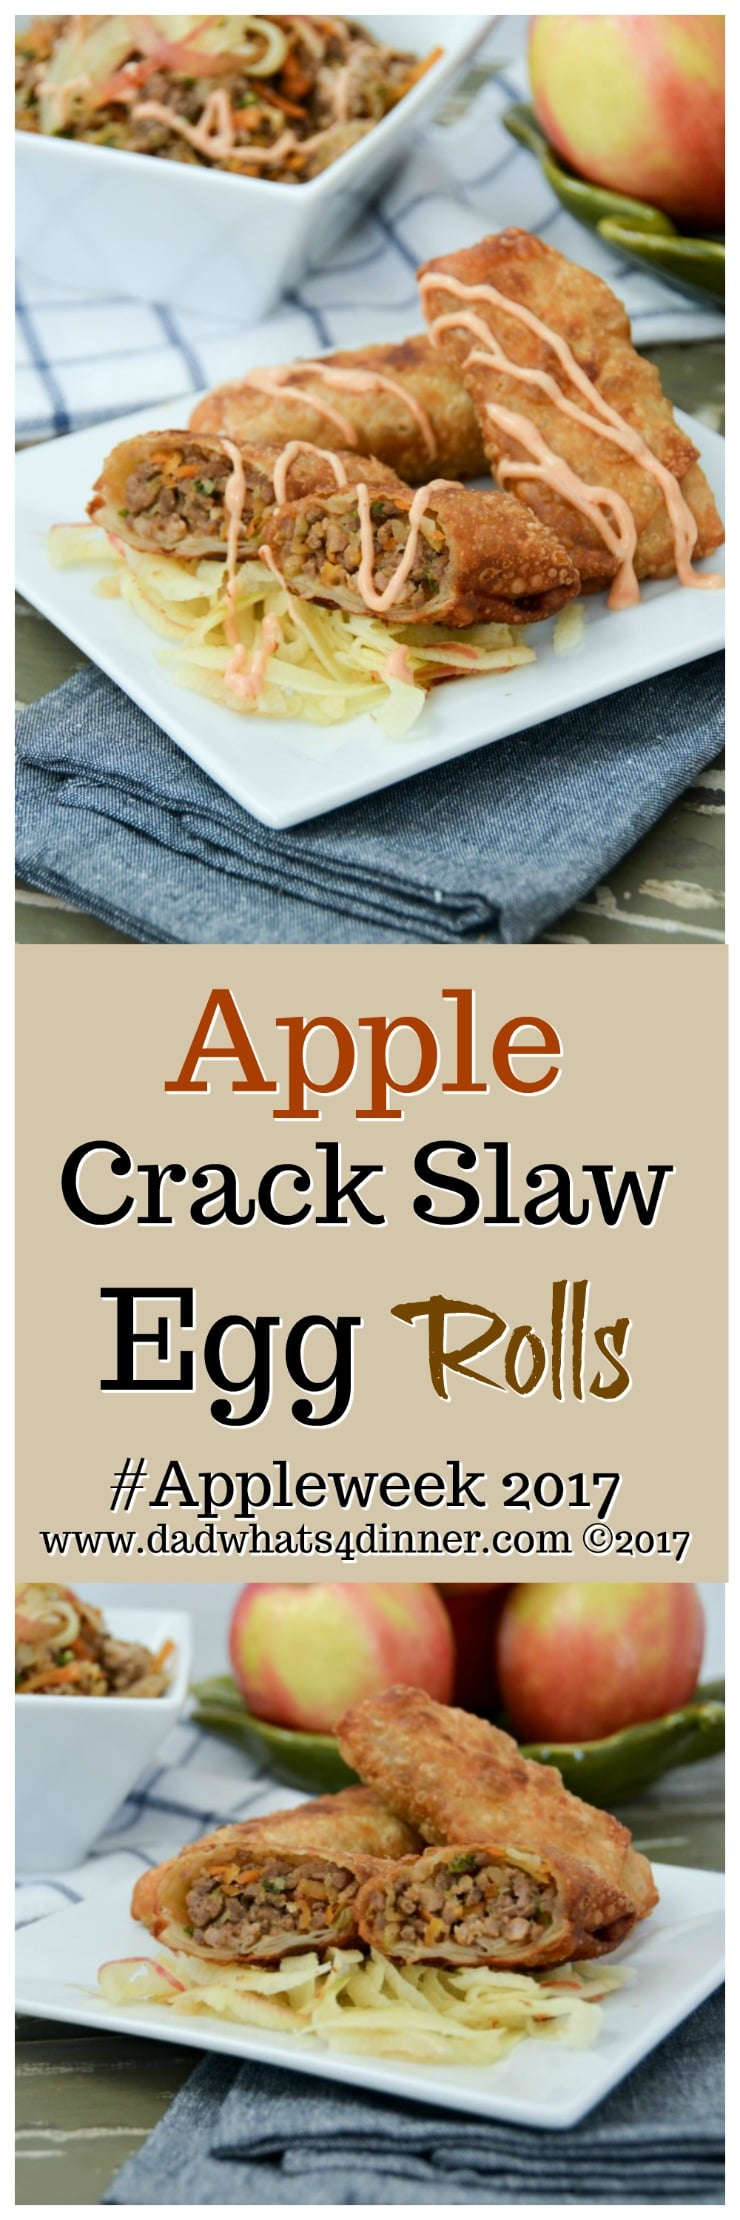 You will get addicted to my Apple Crack Slaw Egg Rolls with Creamy Sriracha Sauce! Amazing flavor with a hint of tart apple sweetness, destined to be your new favorite fall appetizer or dinner. #Appleweek 2017 www.dadwhats4dinner.com